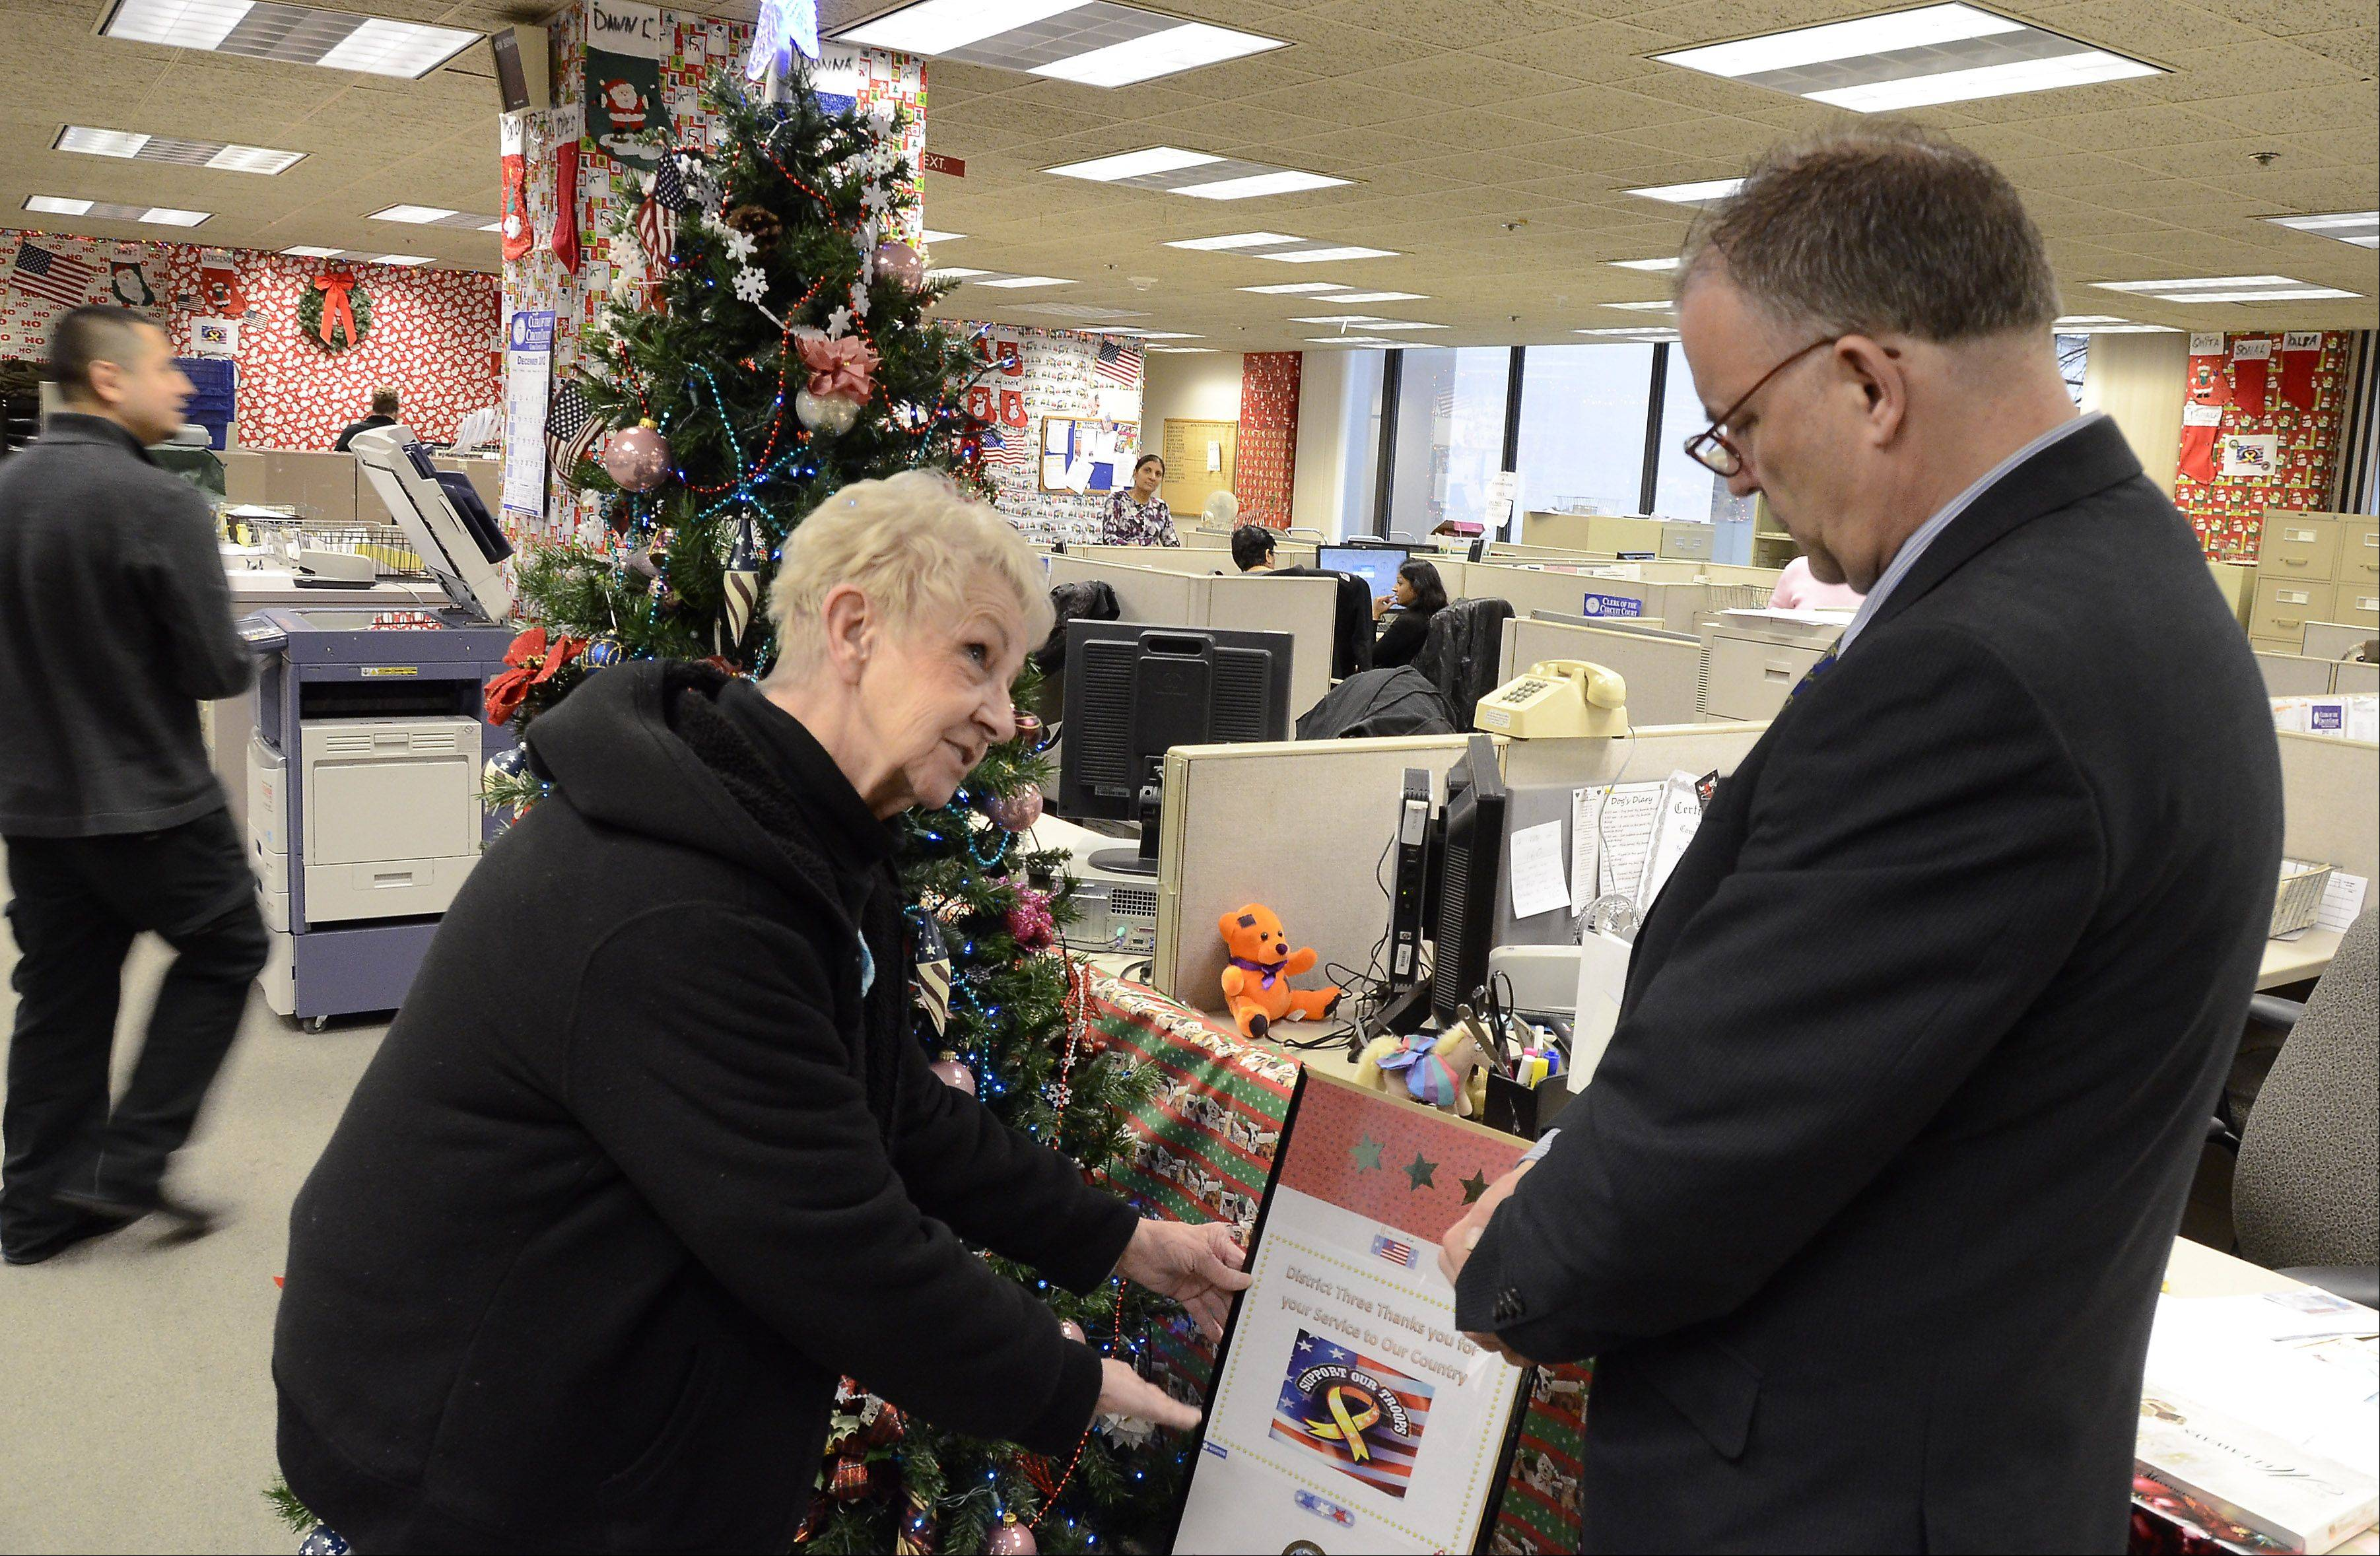 Bill Zars/bzars@dailyherald.comJoan Tessman talks with co-worker Bob Schultz about his holiday decorations at the Clerk of the Circuit Court of Cook County office at the Third Municipal District Courthouse in Rolling Meadows.